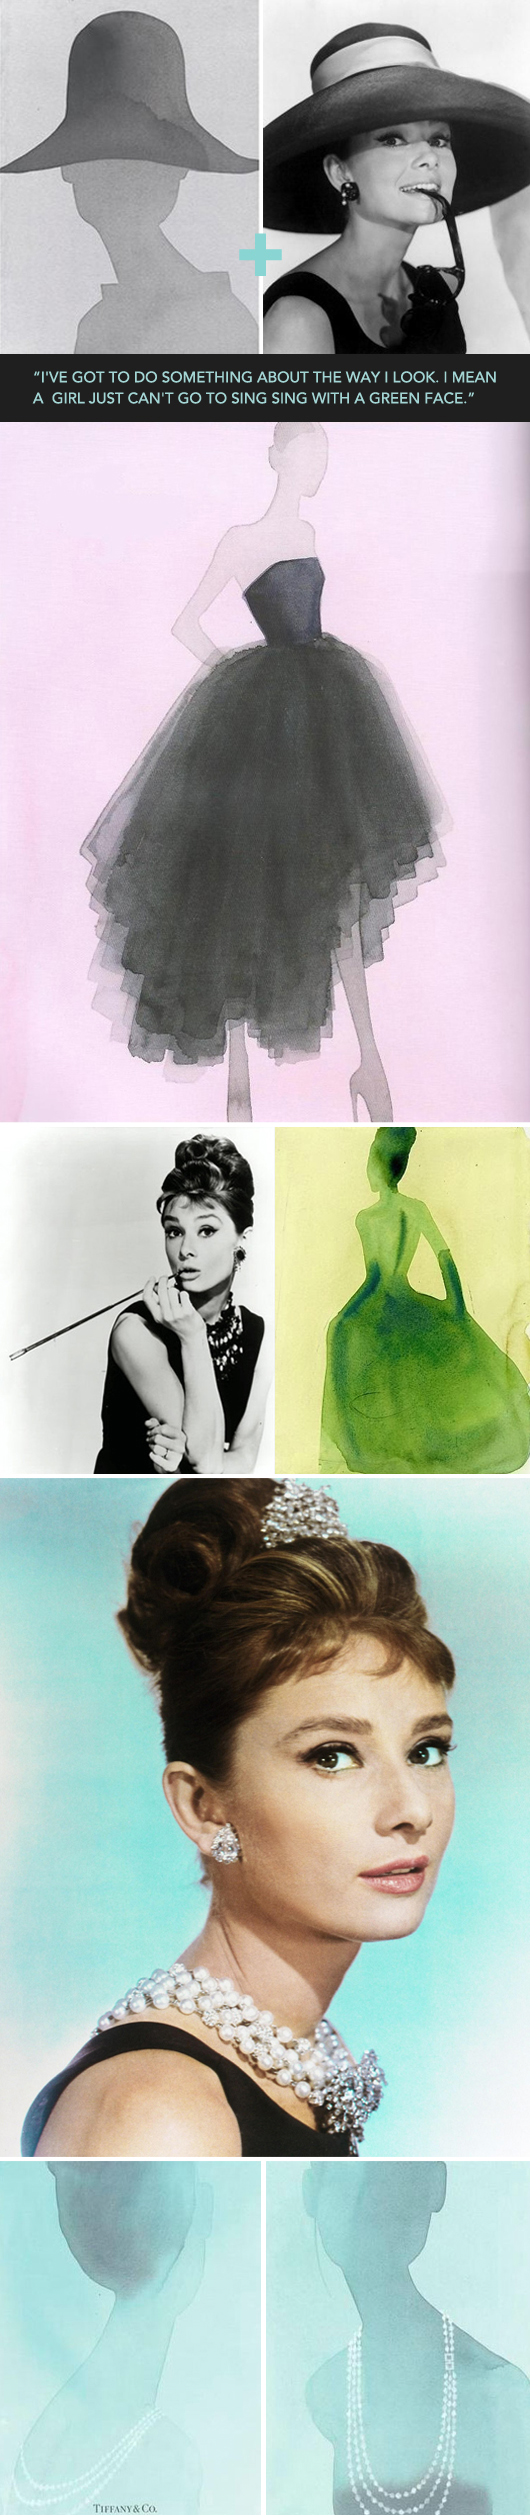 holly golightly - real art for a fictitious world on @sfgirlbybay / victoria smith / victoria smith  (art by mats gustafson)